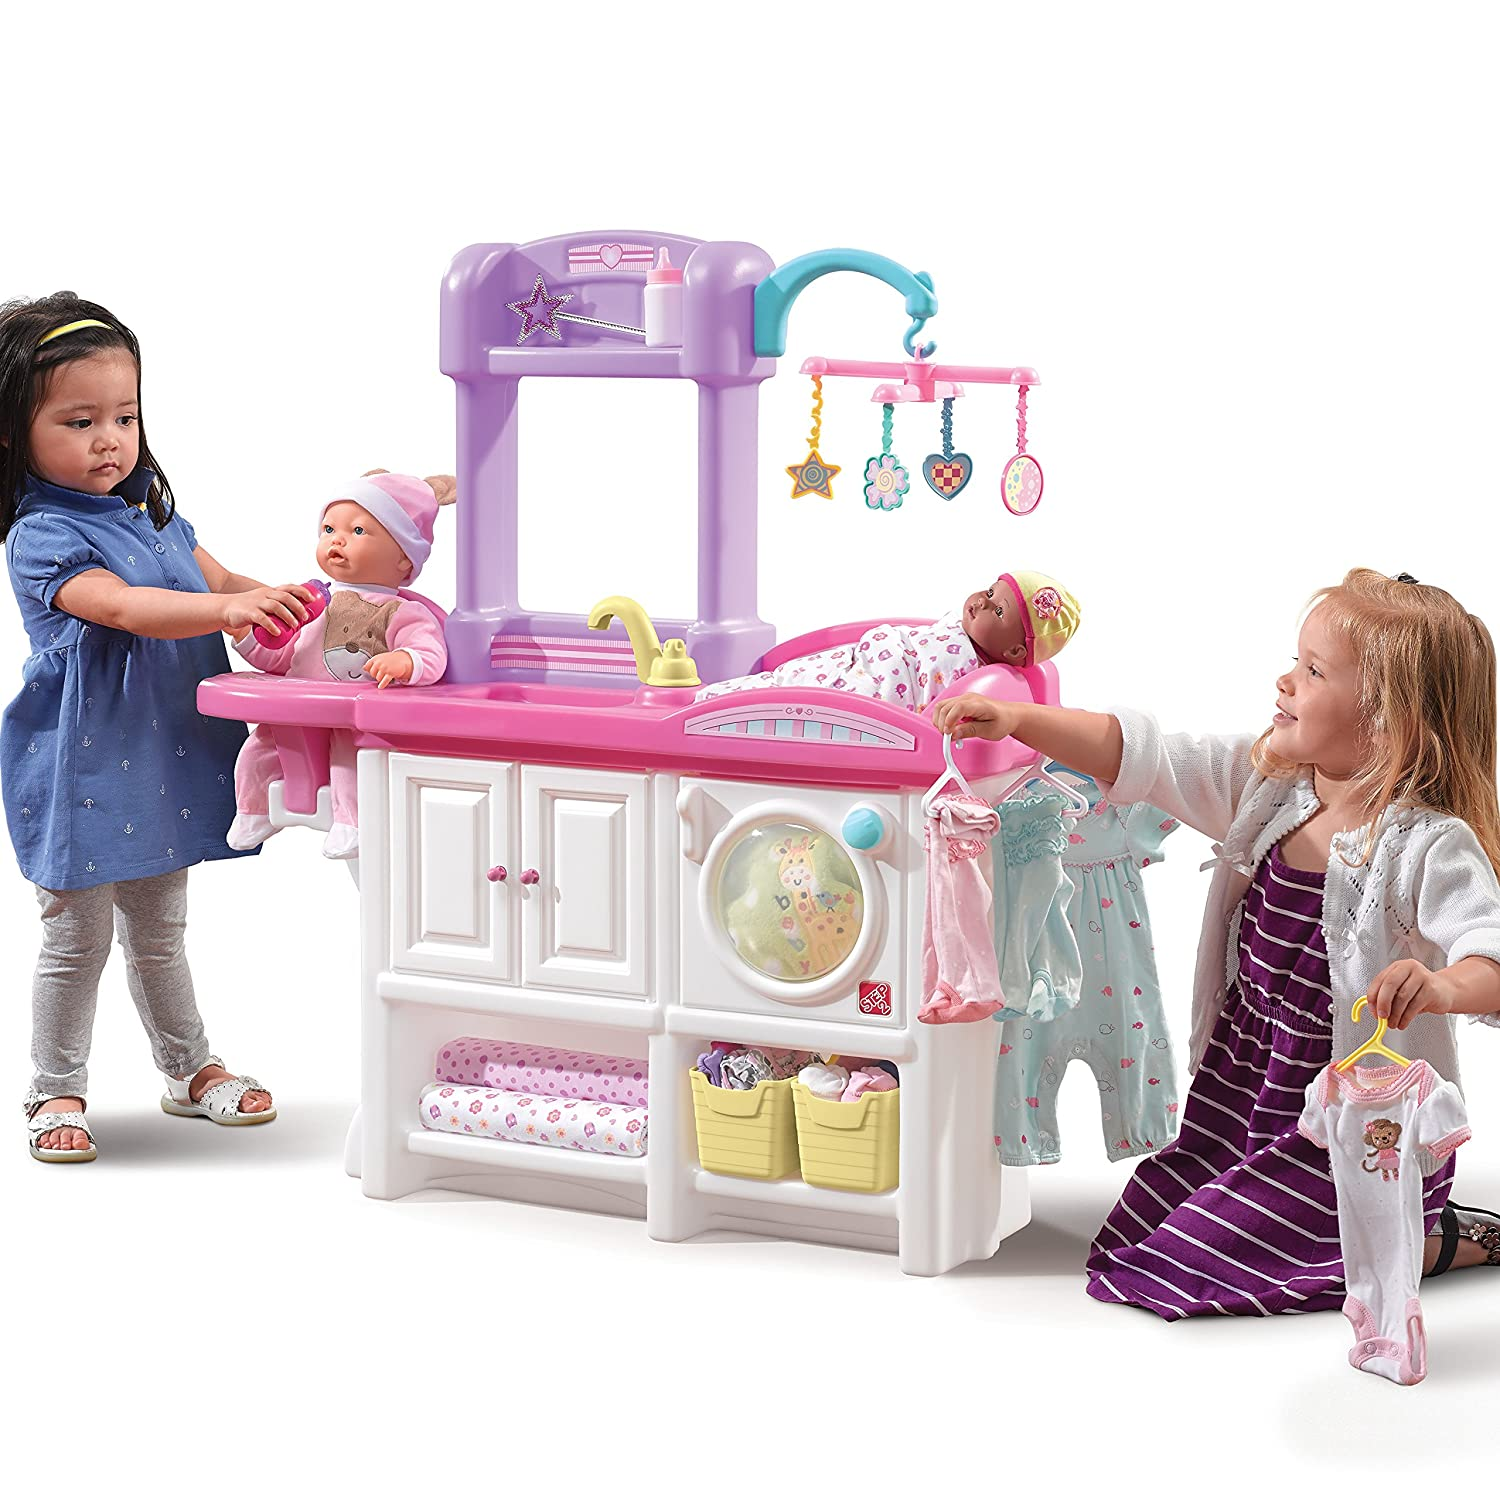 dolls furniture set. Buy Step 2 Love And Care Deluxe Plastic Nursery Doll Furniture Set Online At Low Prices In India - Amazon.in Dolls R